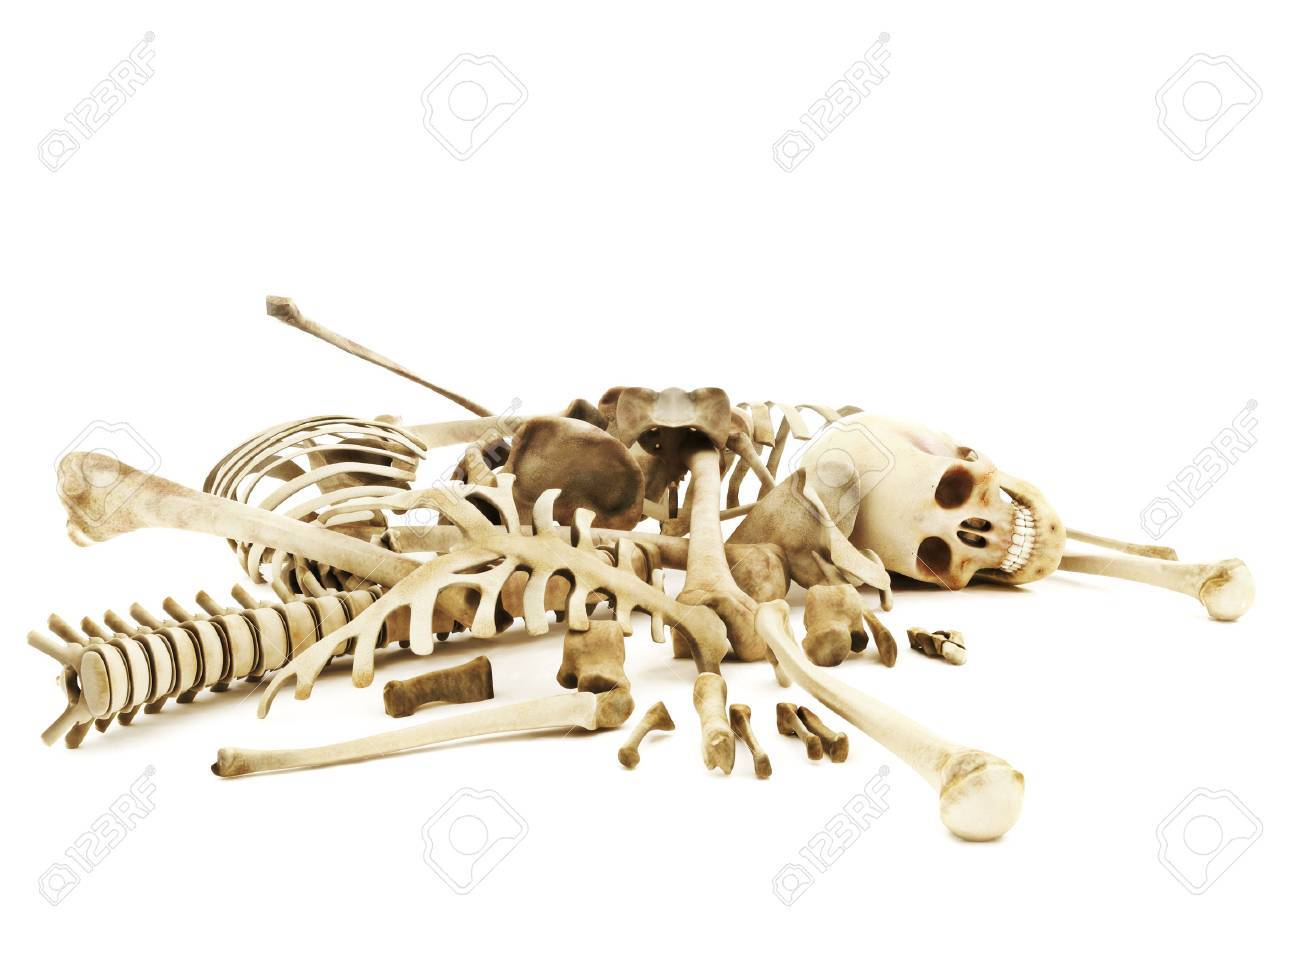 Pile of bones, photo realistic 3d rendering on a isolated white background. Standard-Bild - 52415103